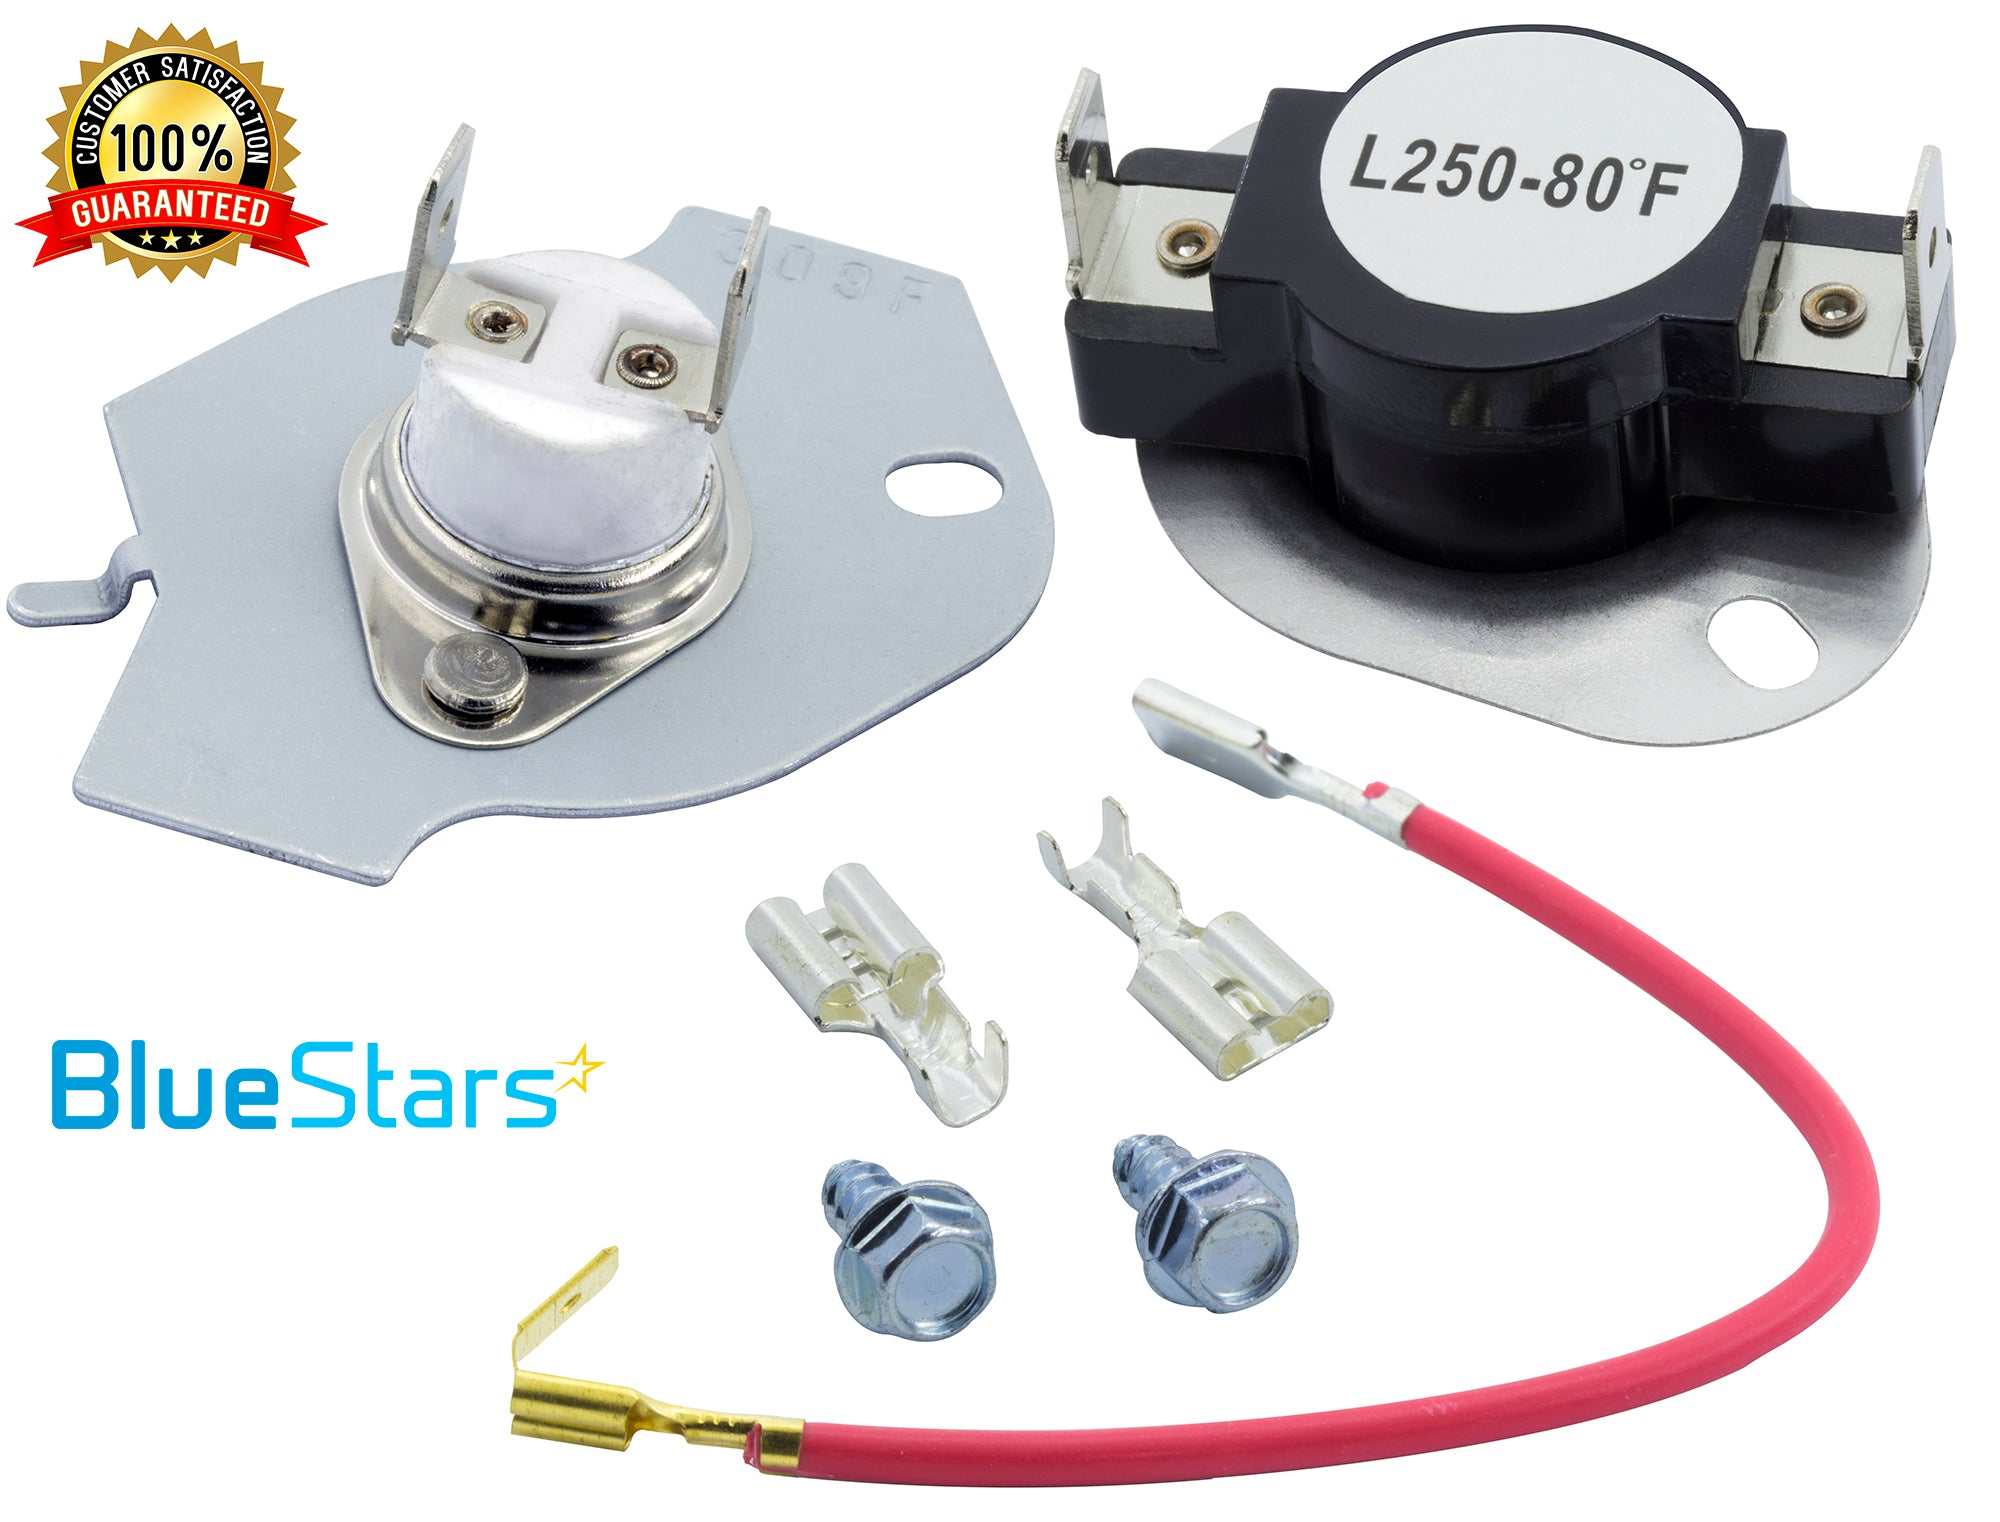 Dryer Thermostat Kit Replacement by Blue Stars Exact Fit